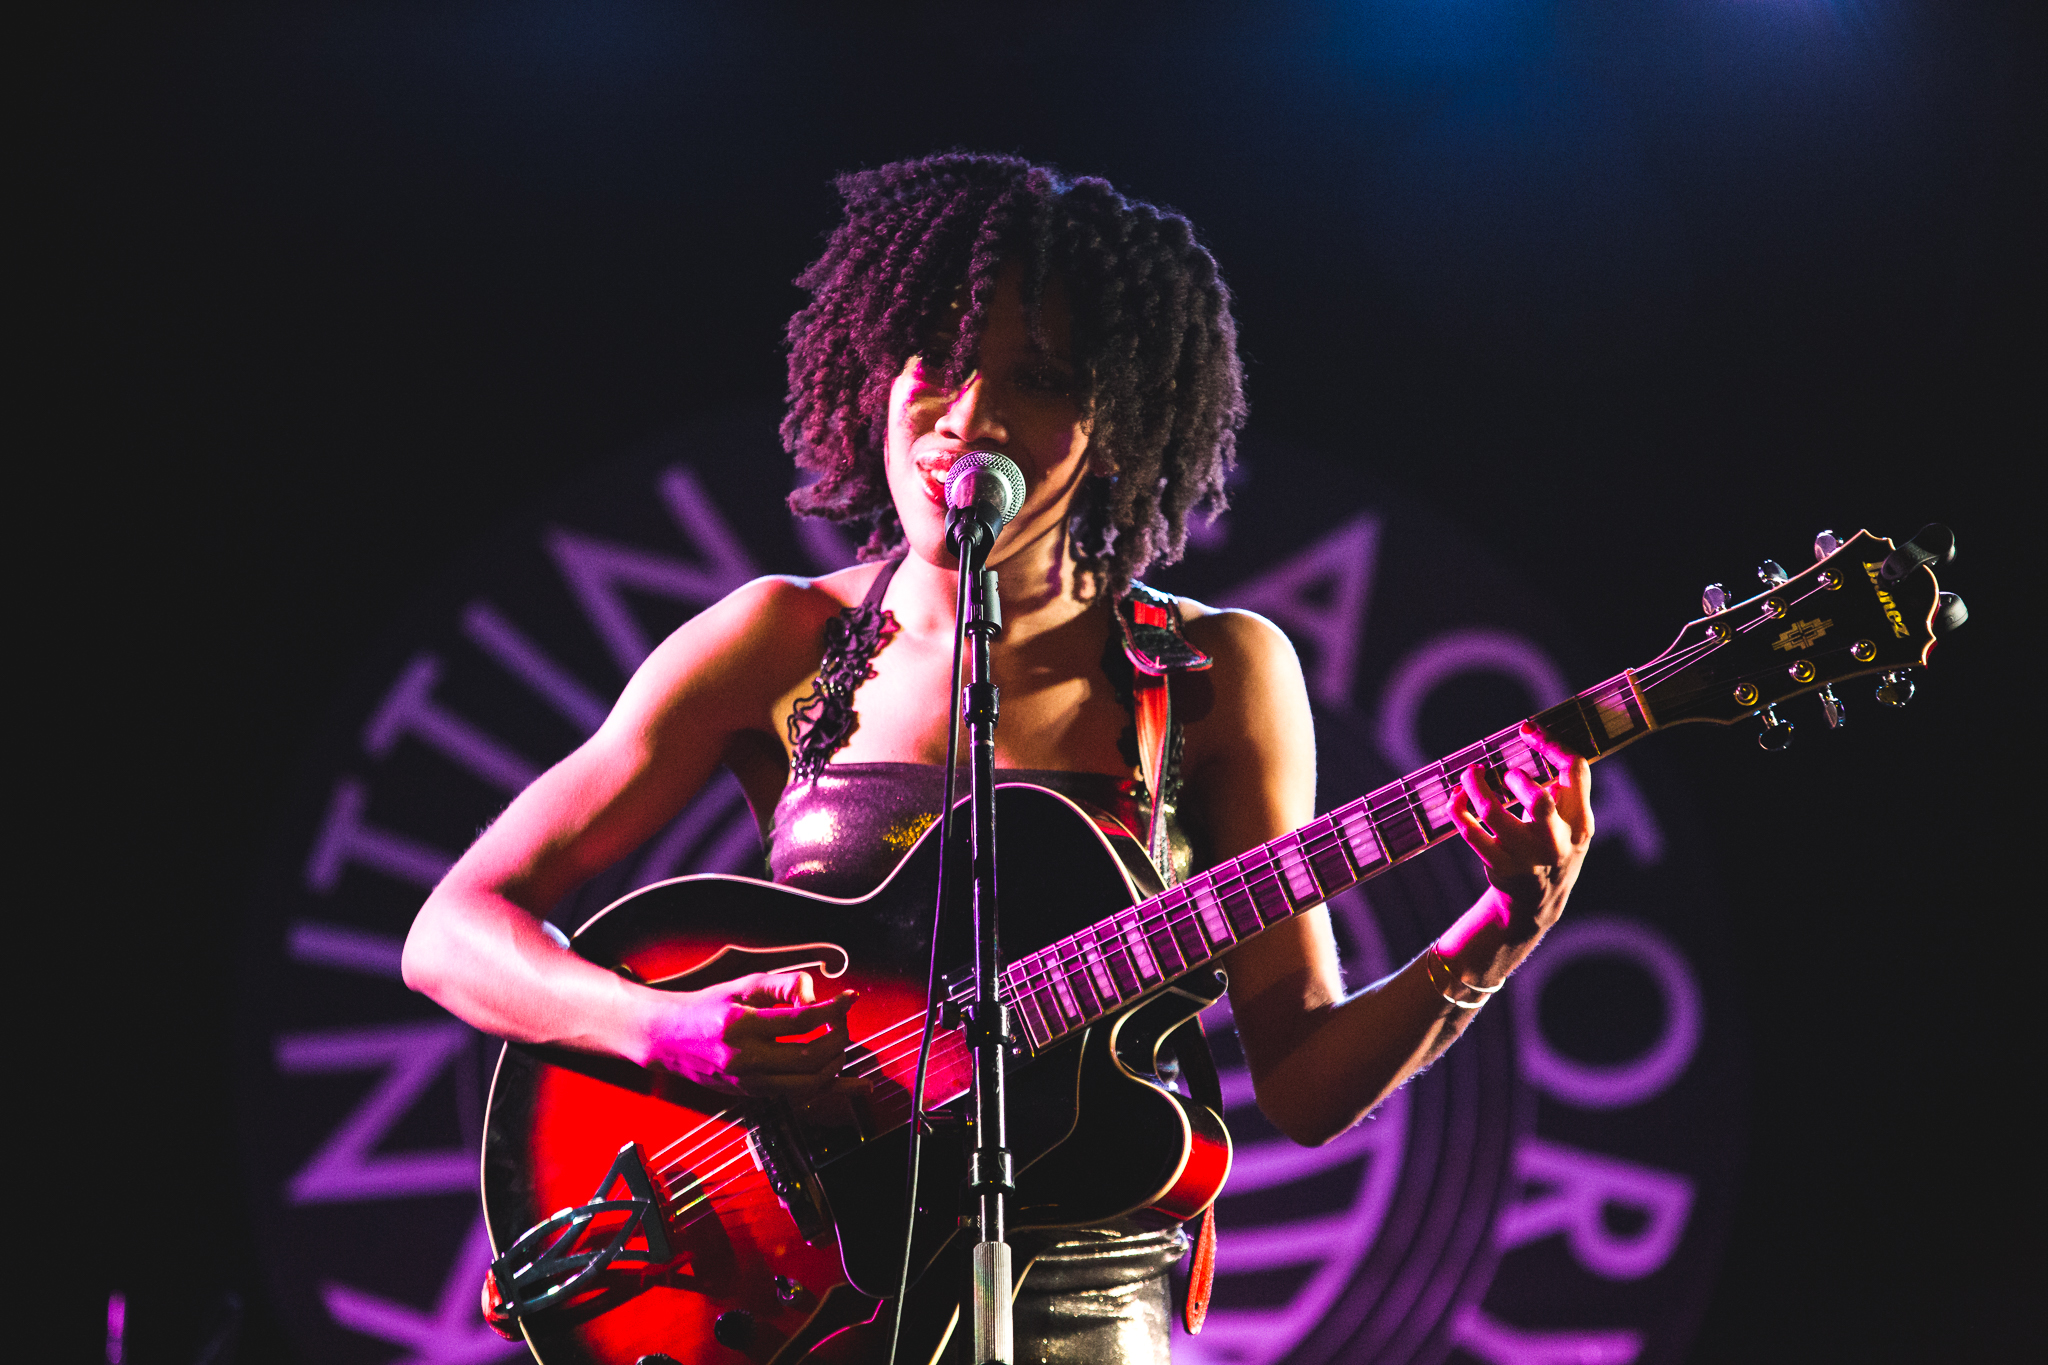 Olivia_K_and_the_Parkers@Knitting_Factory_022218_15.jpg